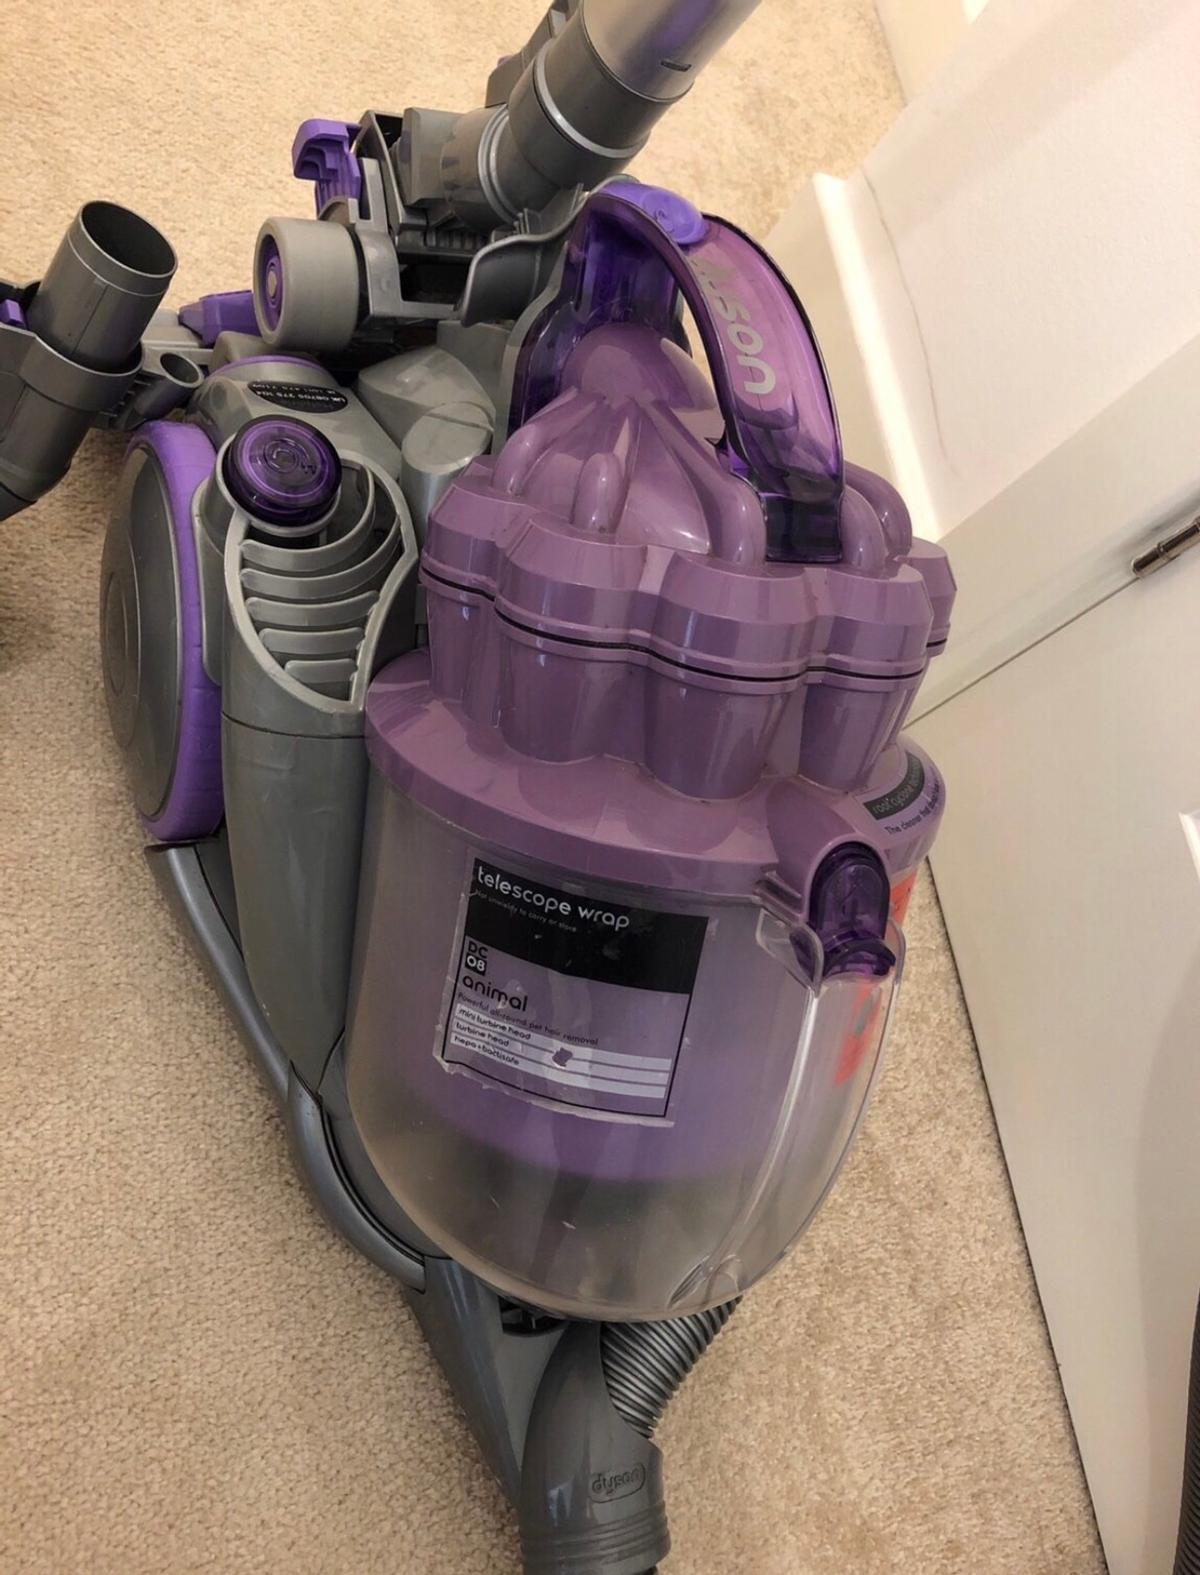 Dyson Dc08 Animal Vacuum Cleaner In E14